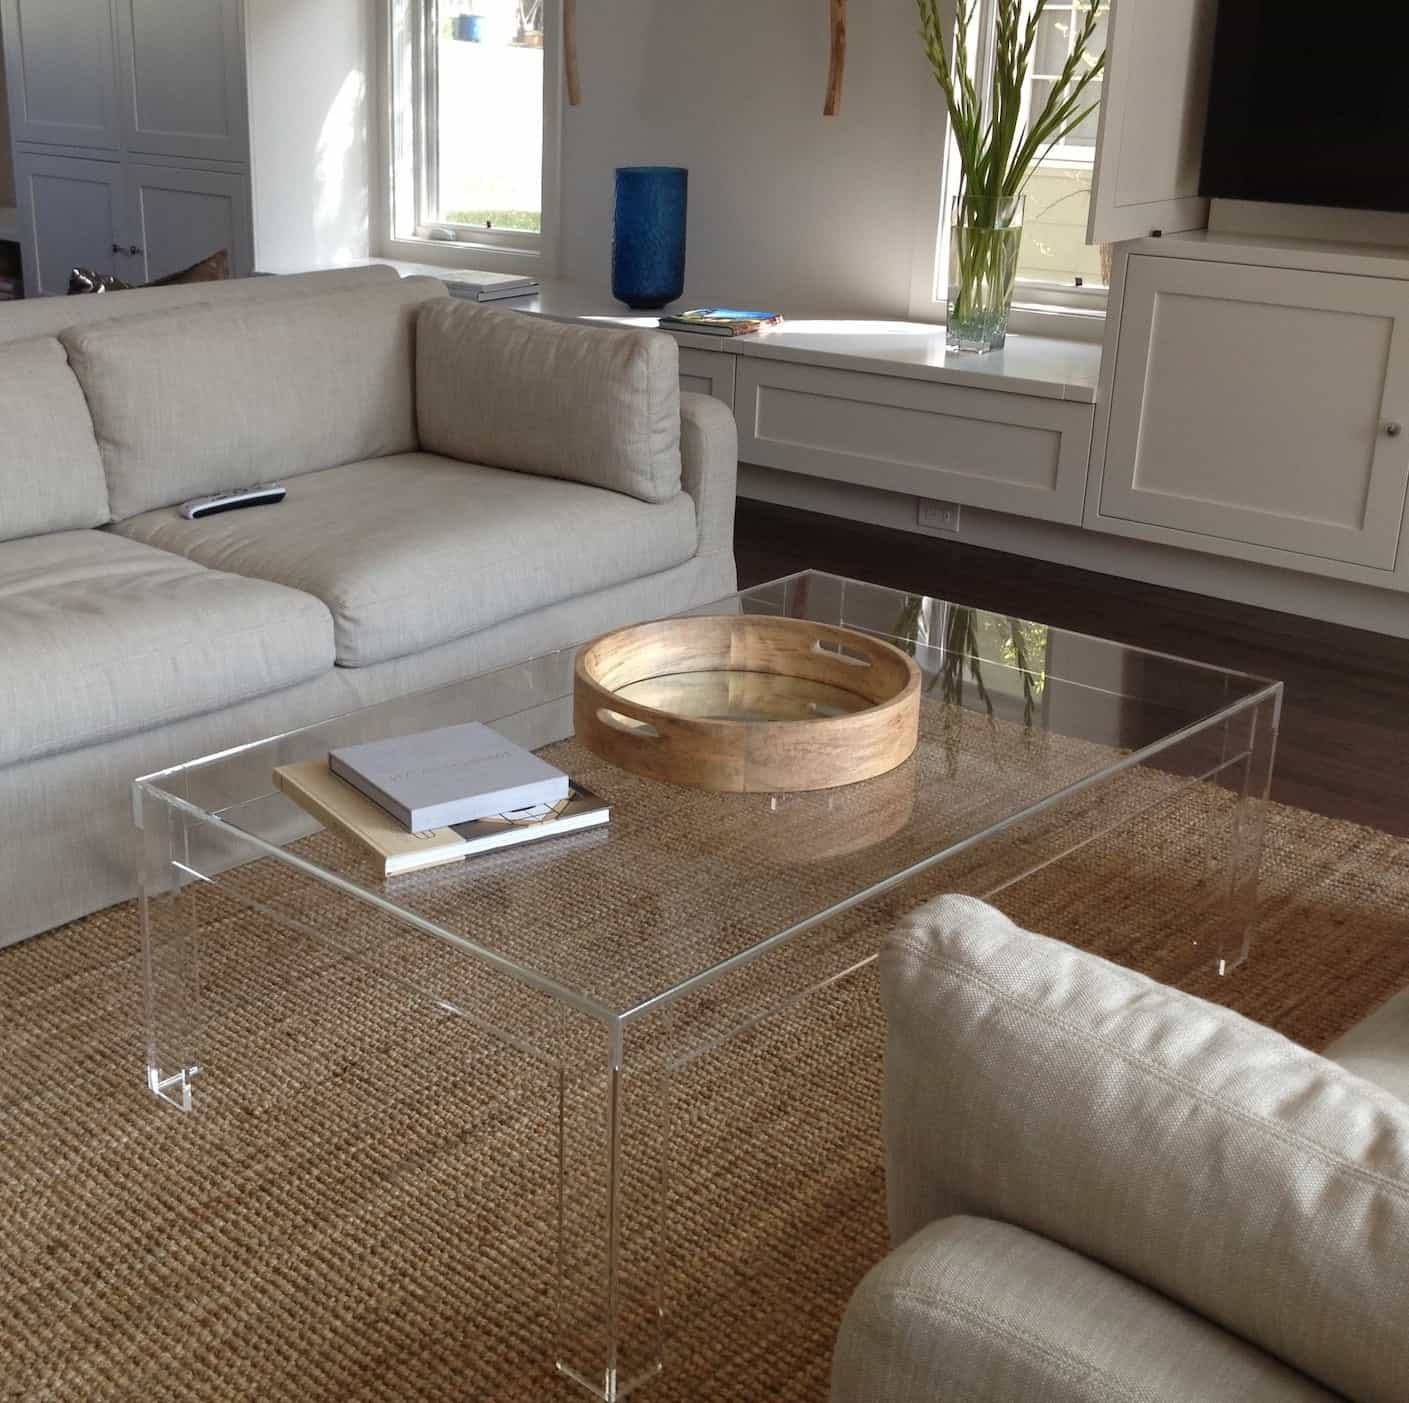 Contemporary Acrylic Coffee Table For Living Room (Image 4 of 30)